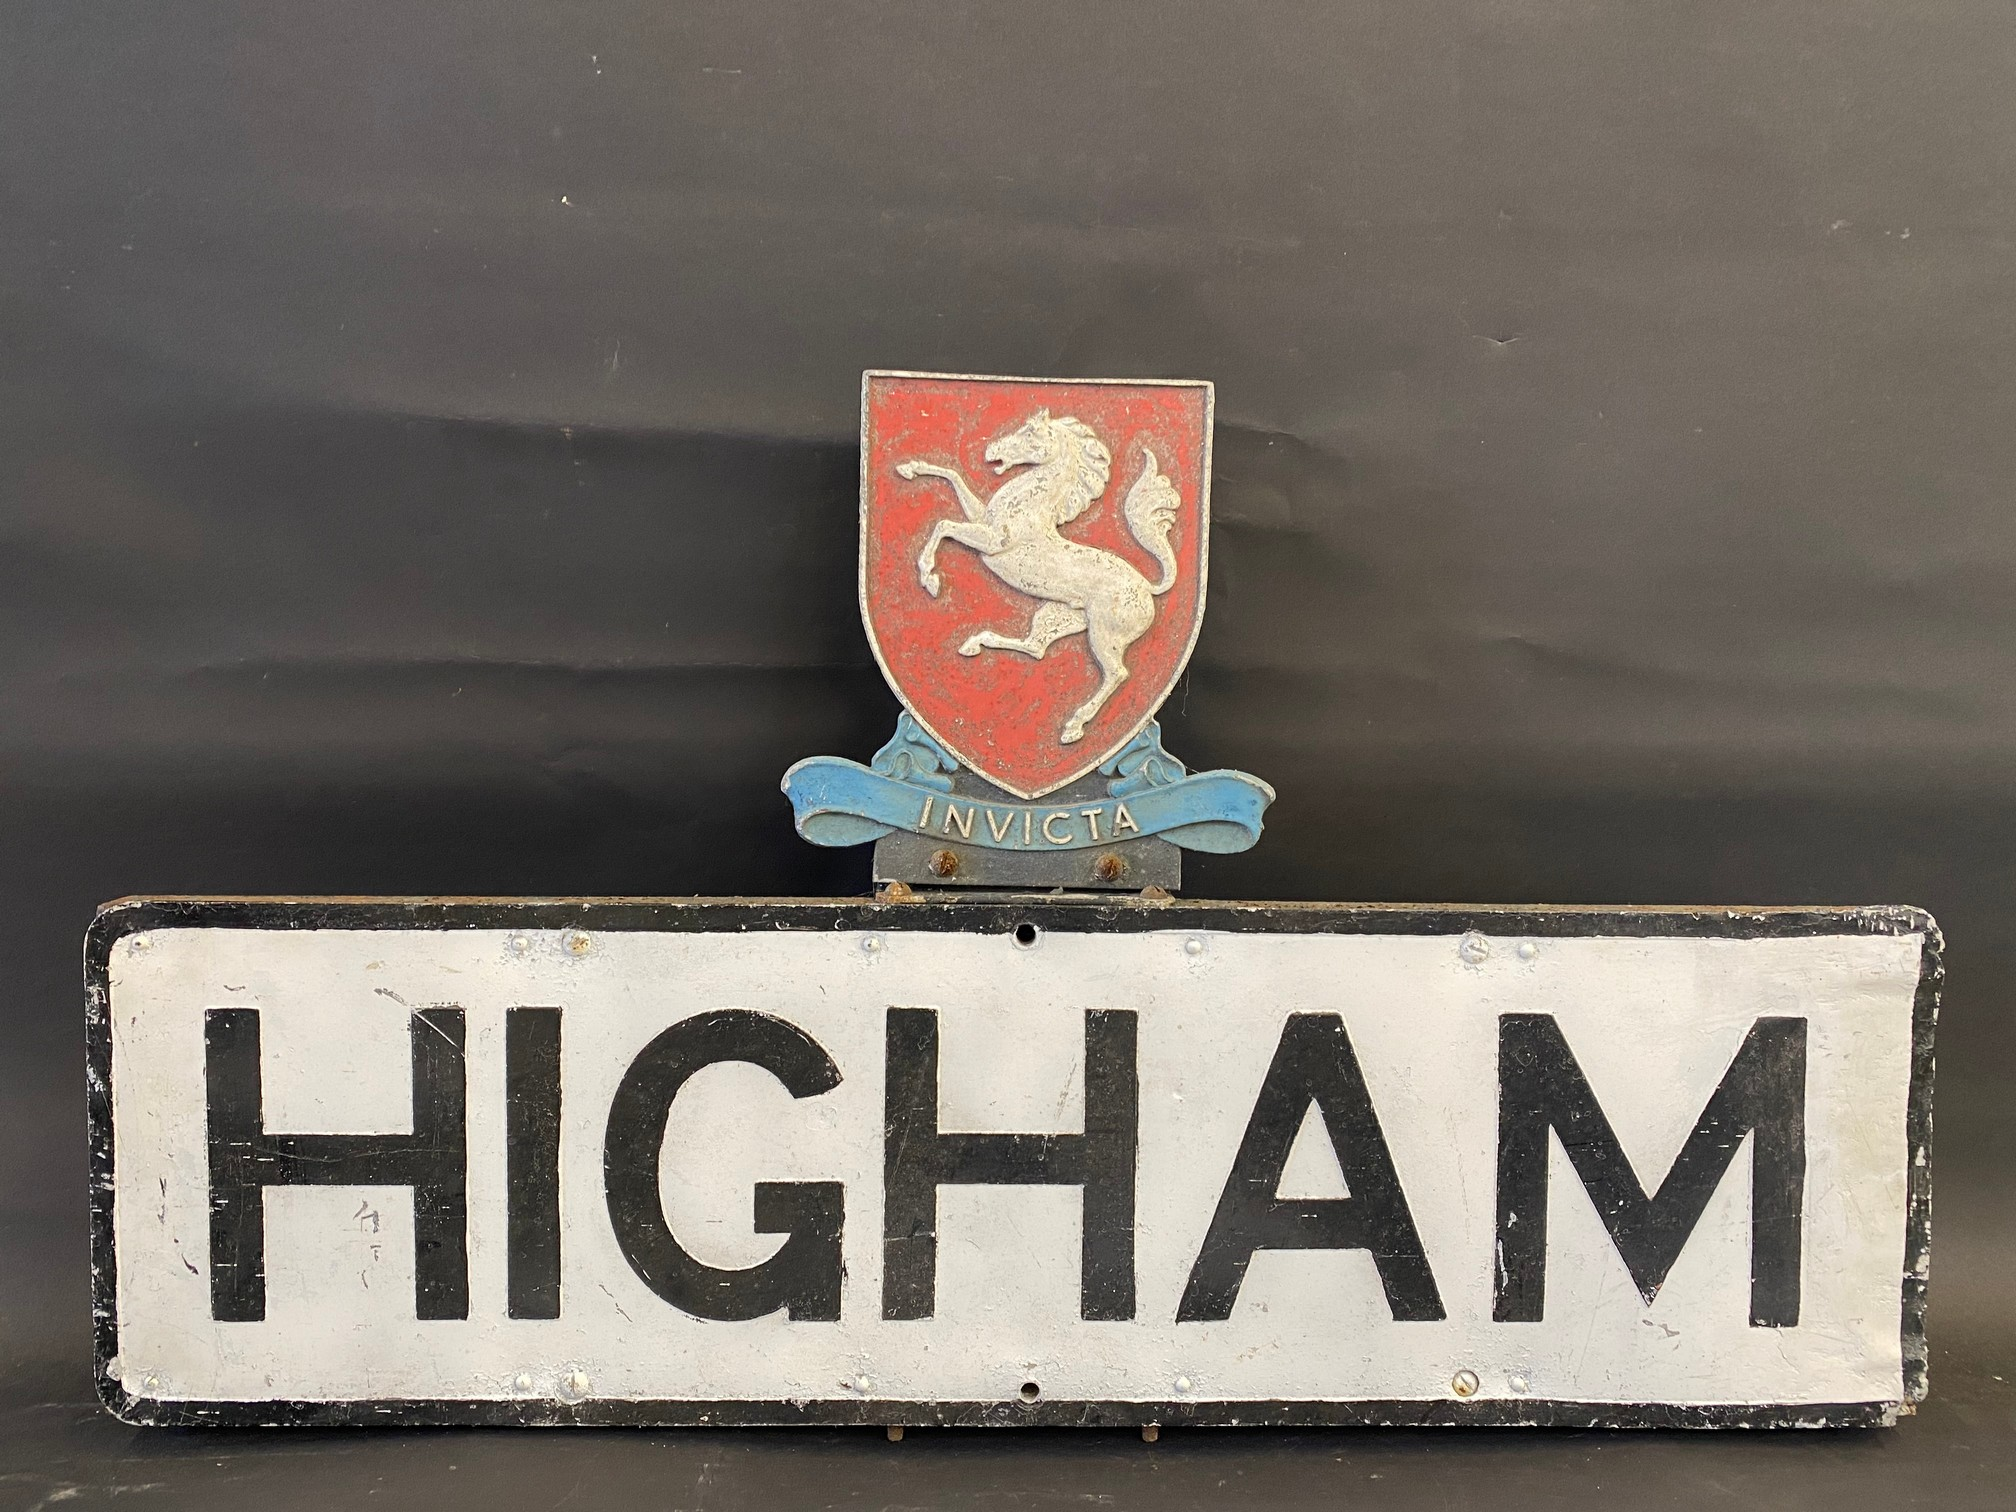 A district road sign for 'Higham' surmounted by an 'Invicta' shield, (Strood near Chatham), 36 x